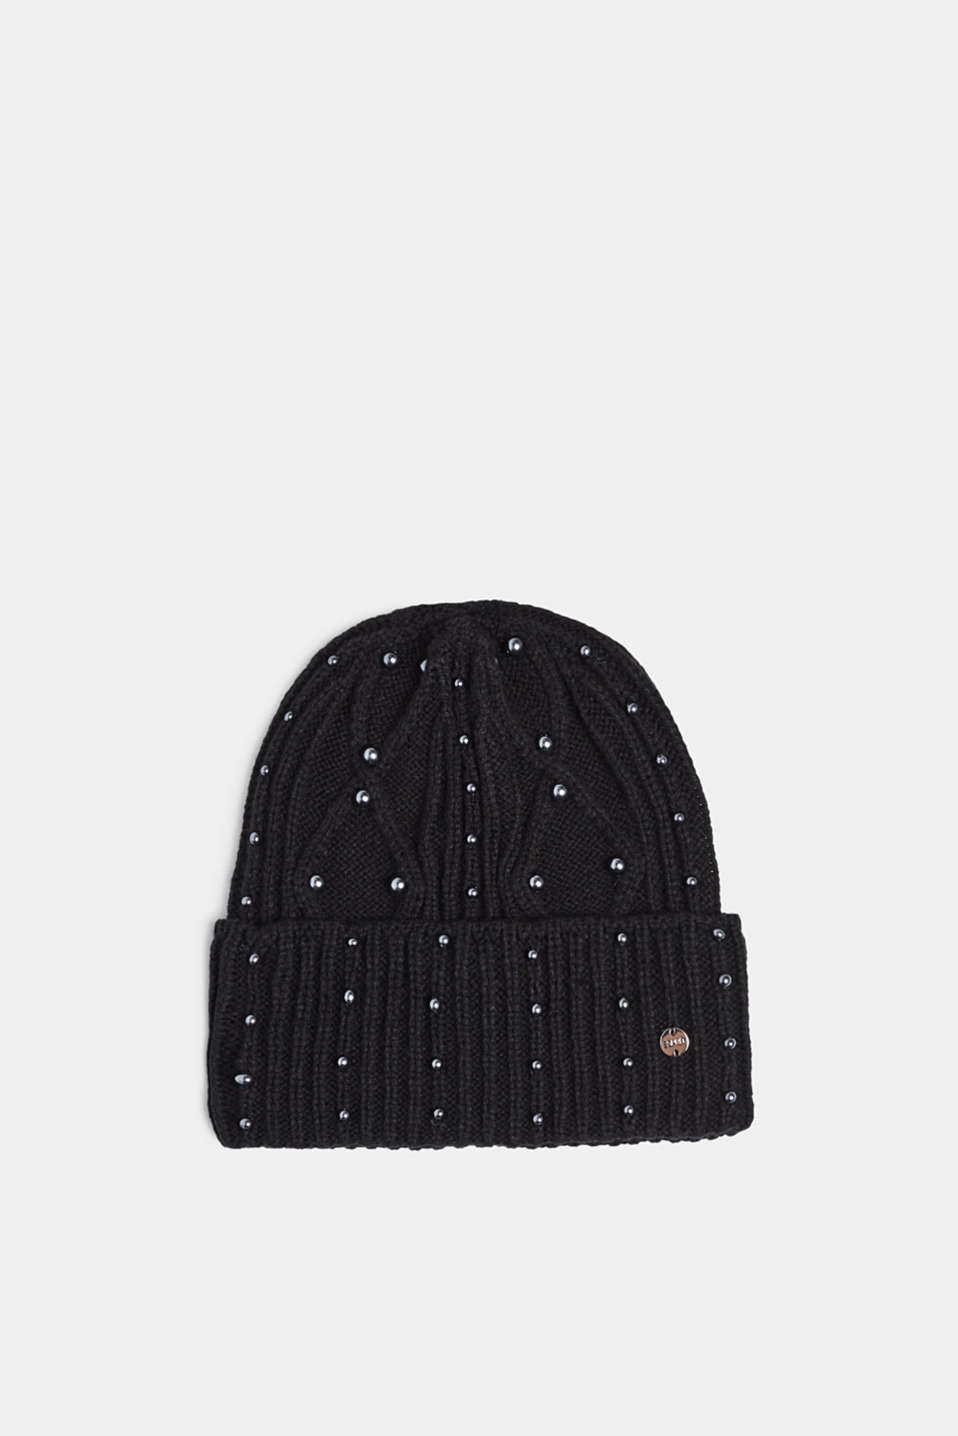 Textured knit beanie trimmed with beads, BLACK, detail image number 0